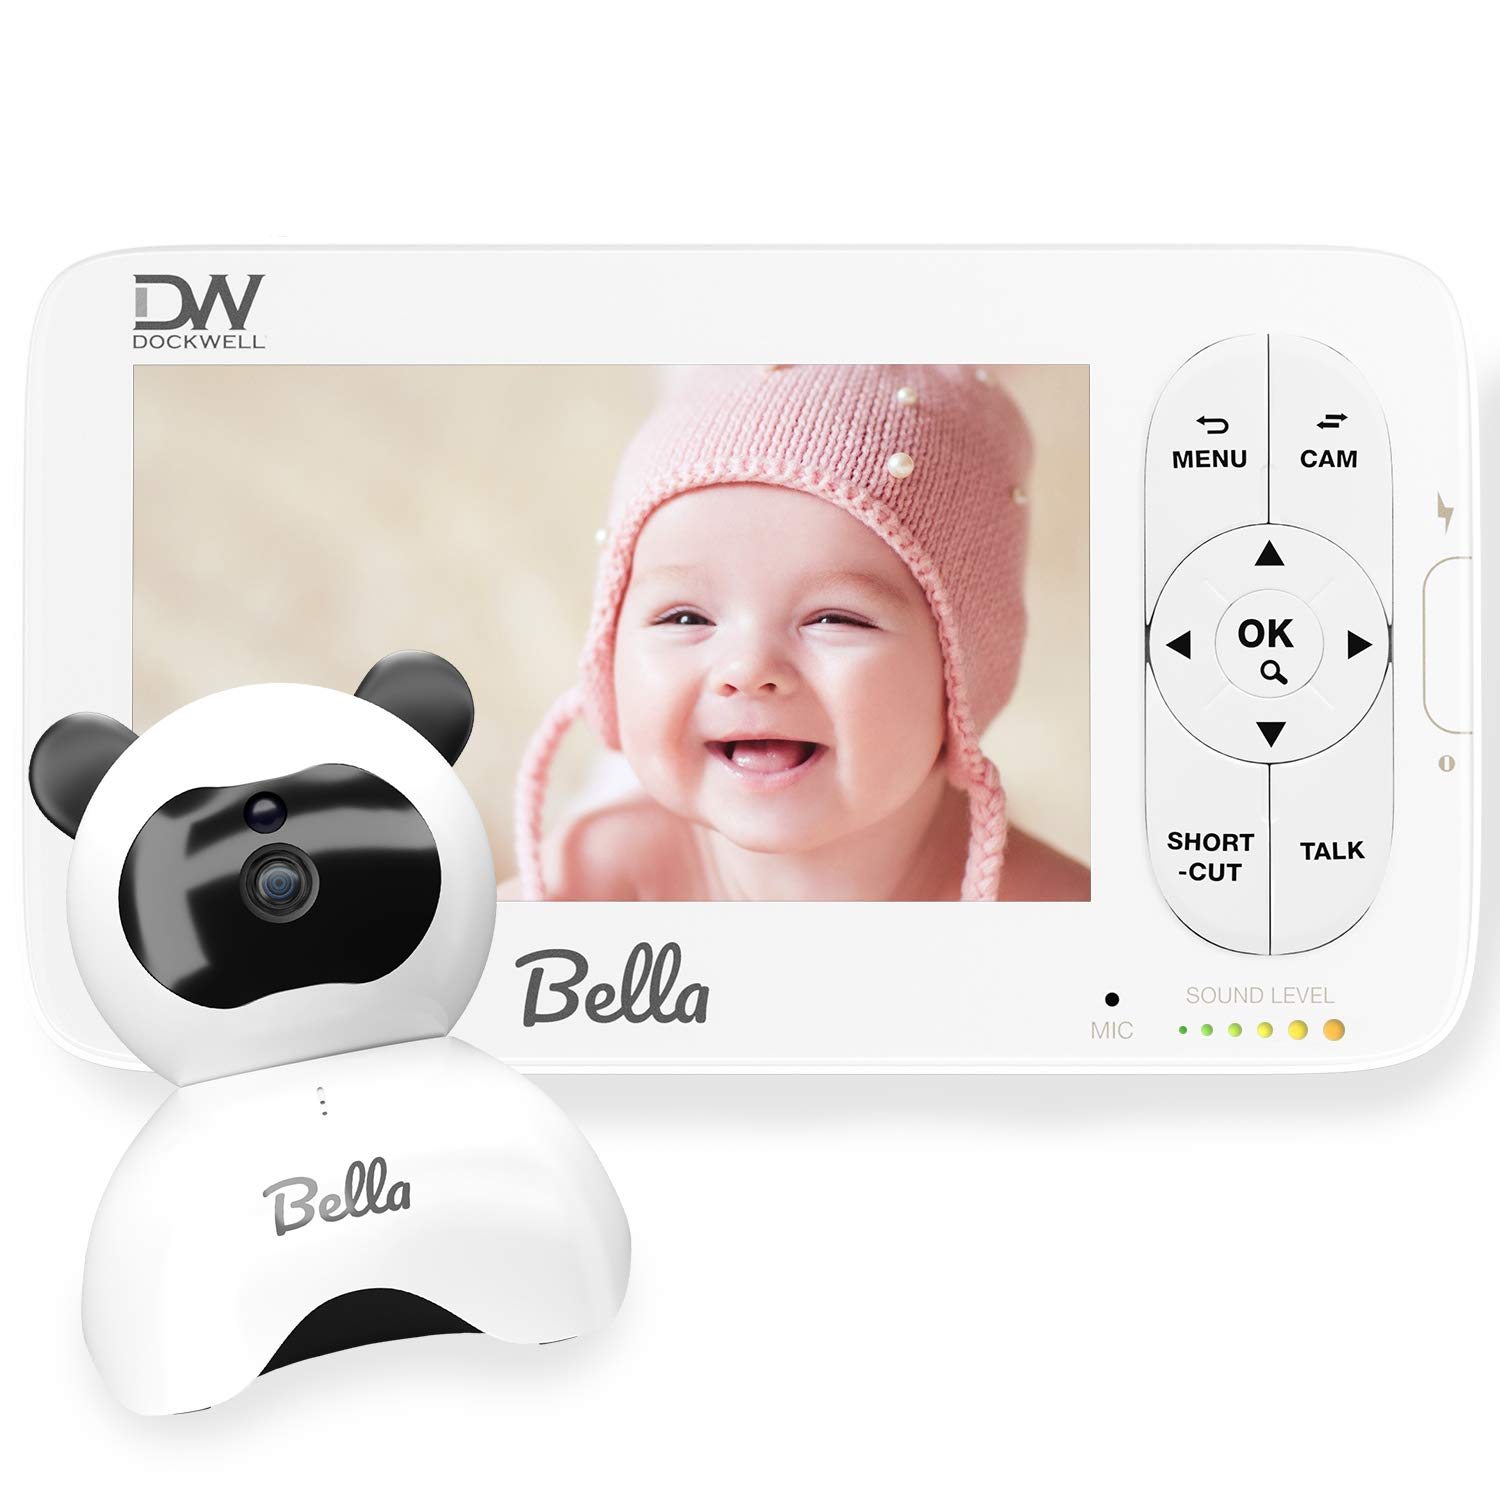 """Dockwell Bella Baby Monitor Video with Camera and Audio - 5"""" LCD Display - HD Clear Picture Quality - Wide Angle 340 Degrees Pan 90 Degrees Tilt - 2 Way Audio - Alerts - Night Vision, White"""